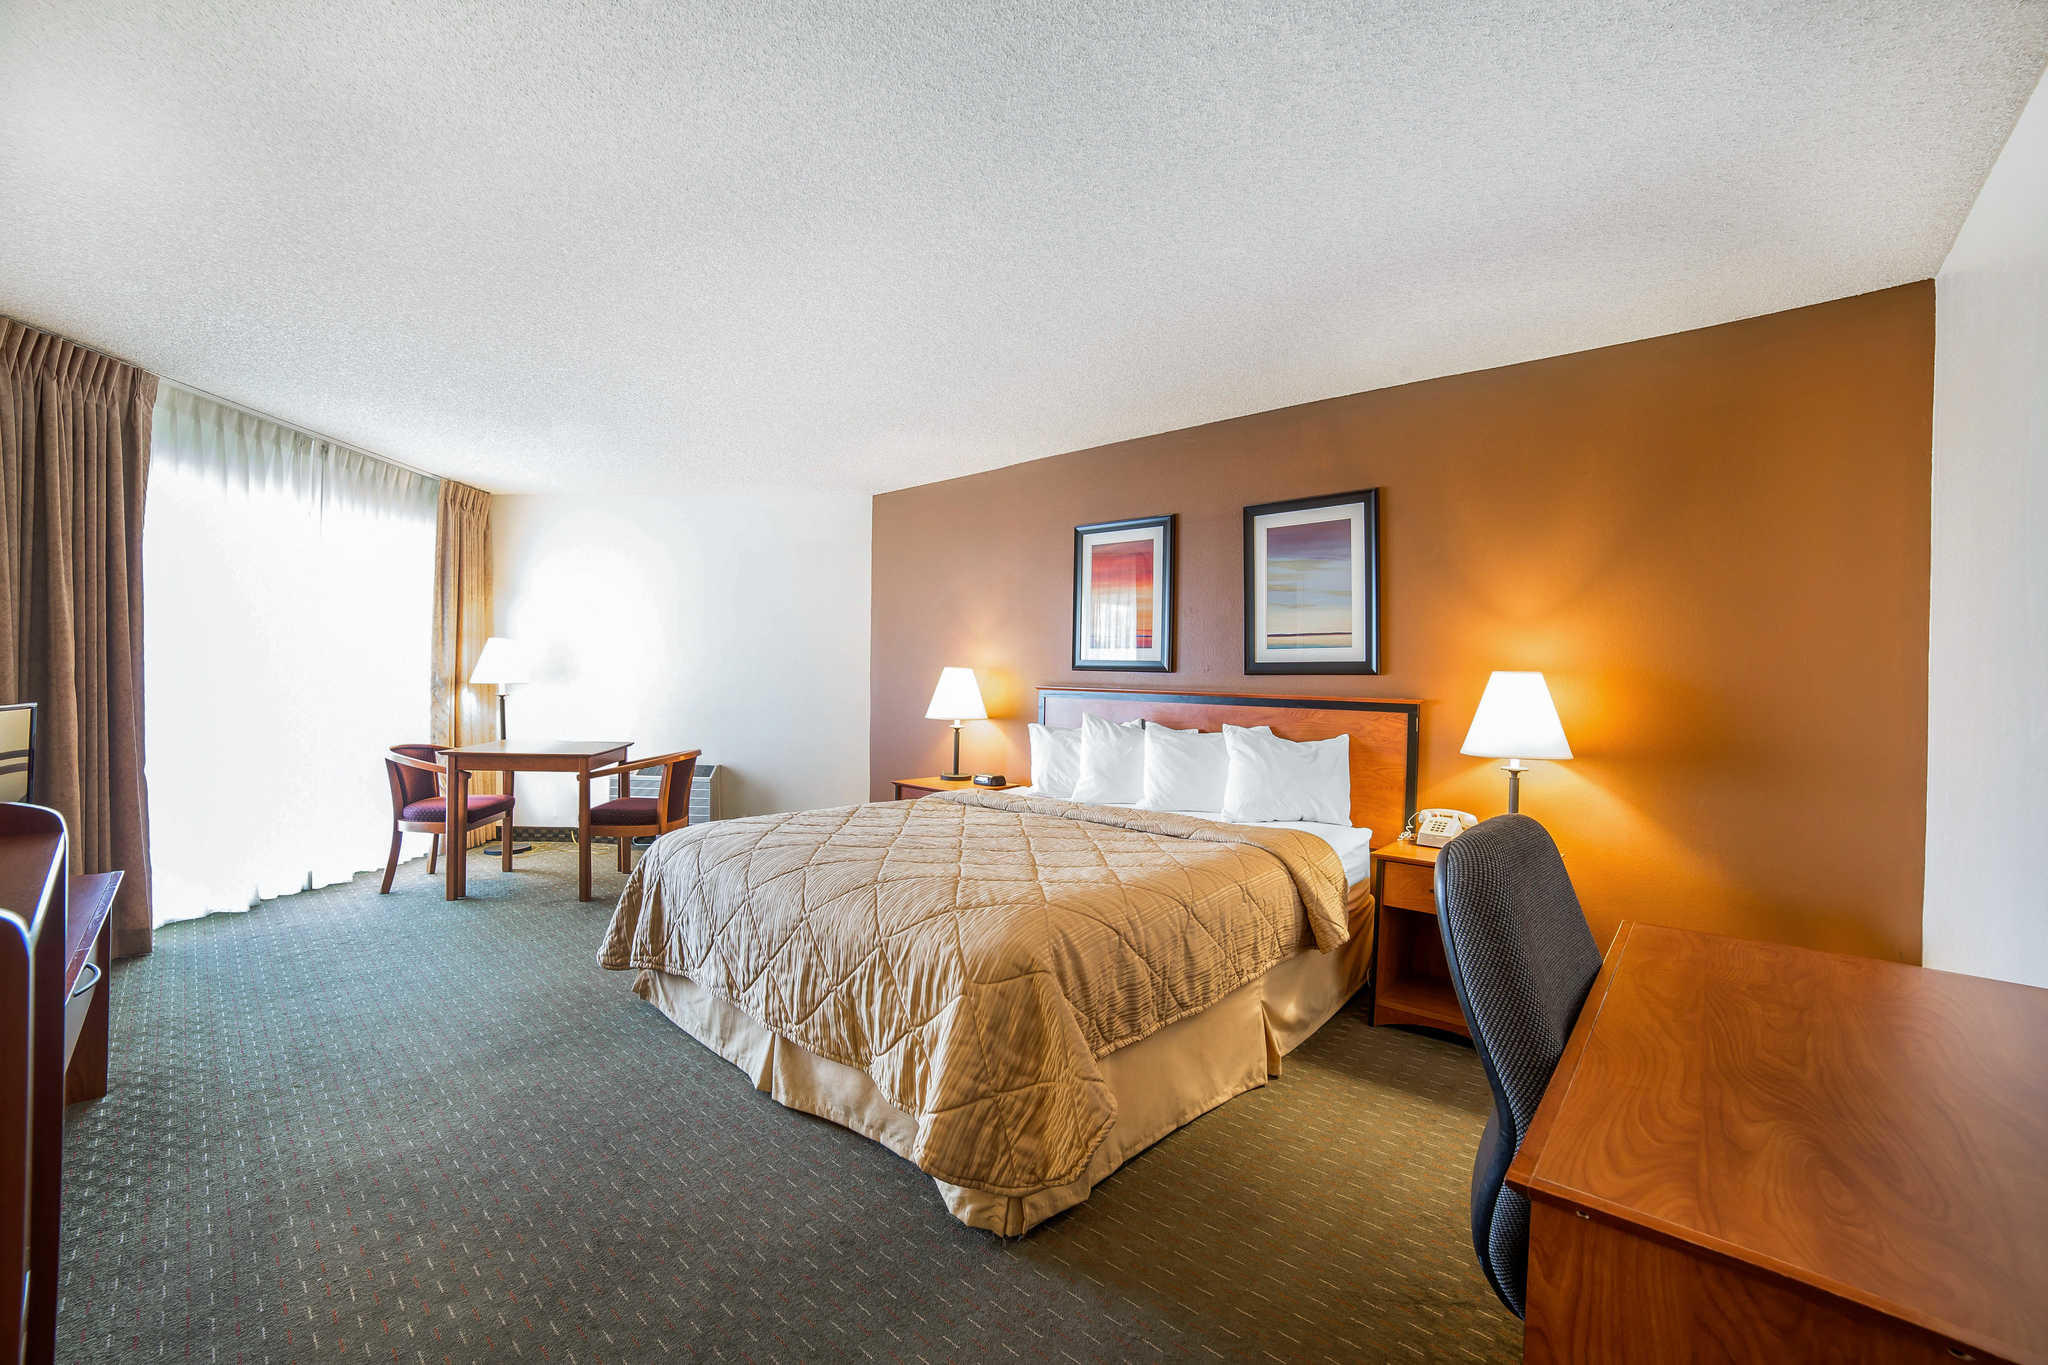 Quality Inn image 10